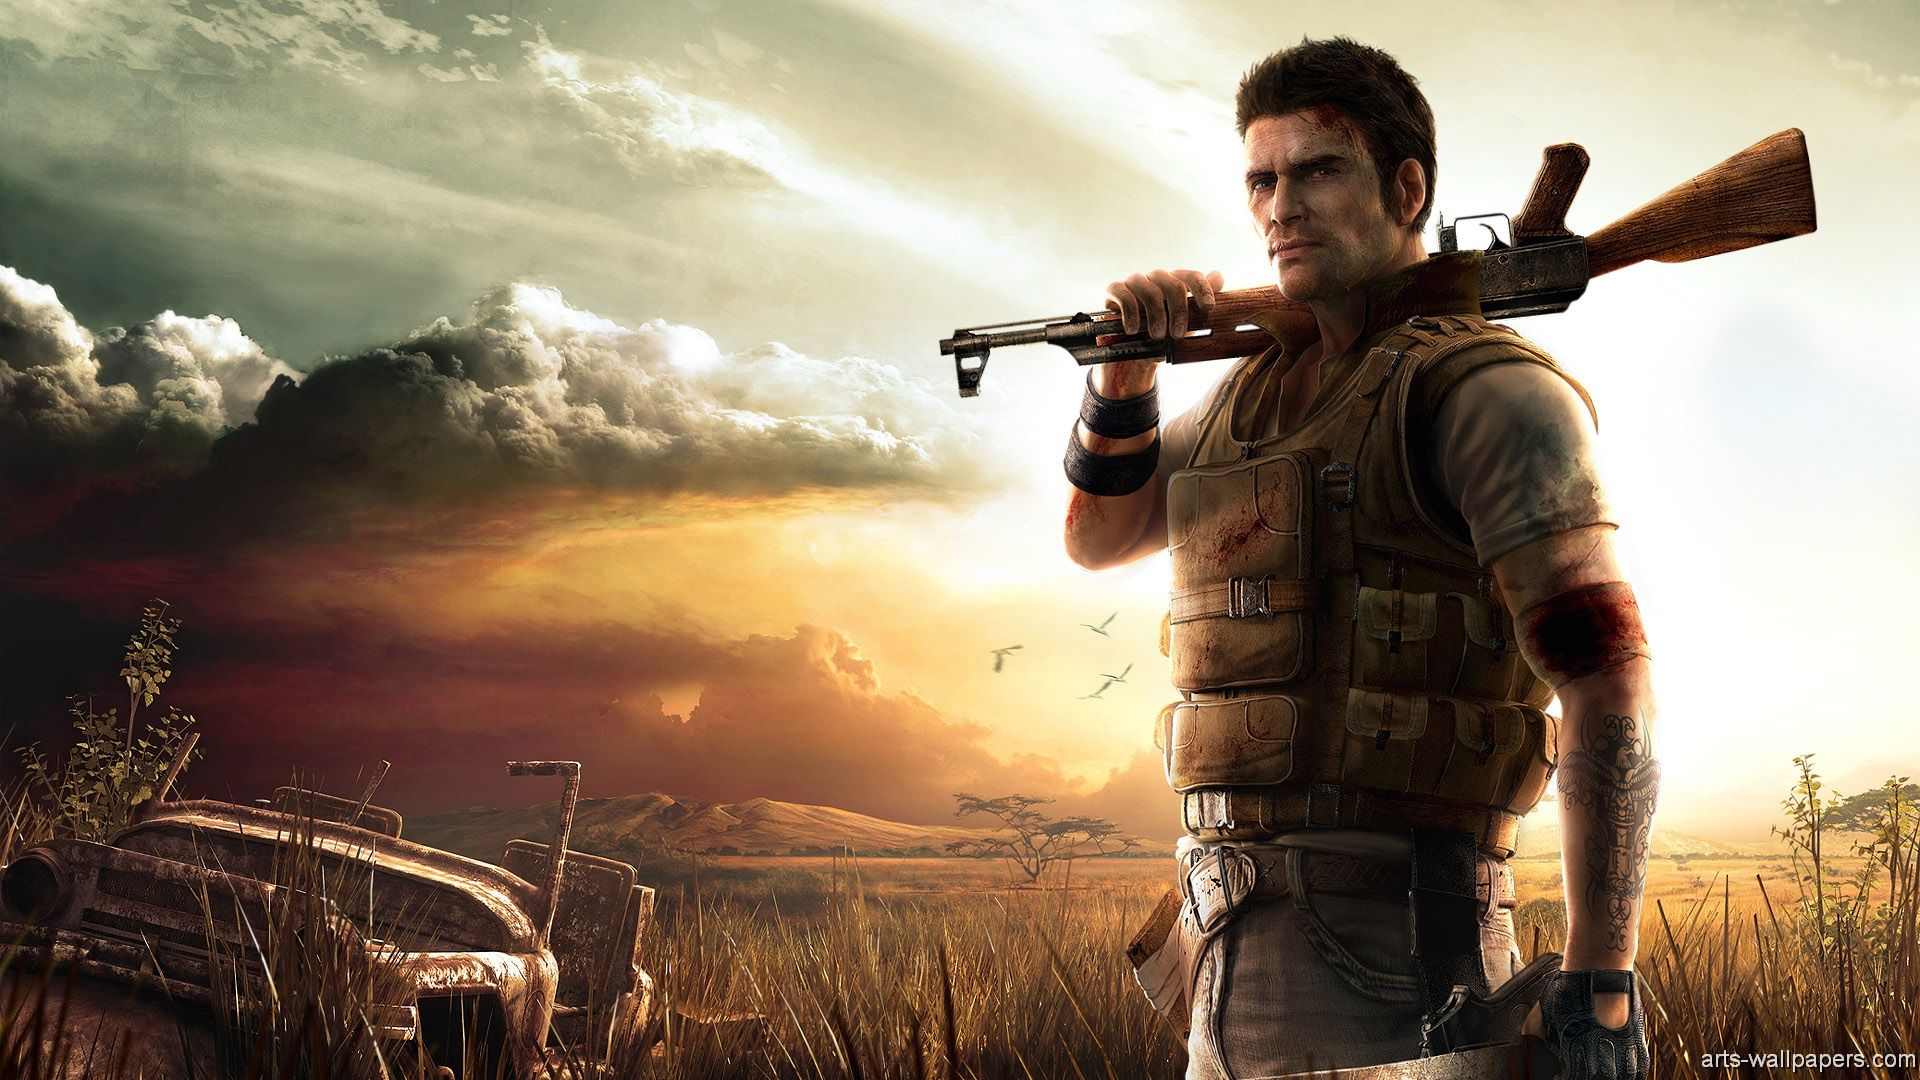 Hd wallpaper games - Xbox 360 Ps3 Video Game Hd Wallpapers